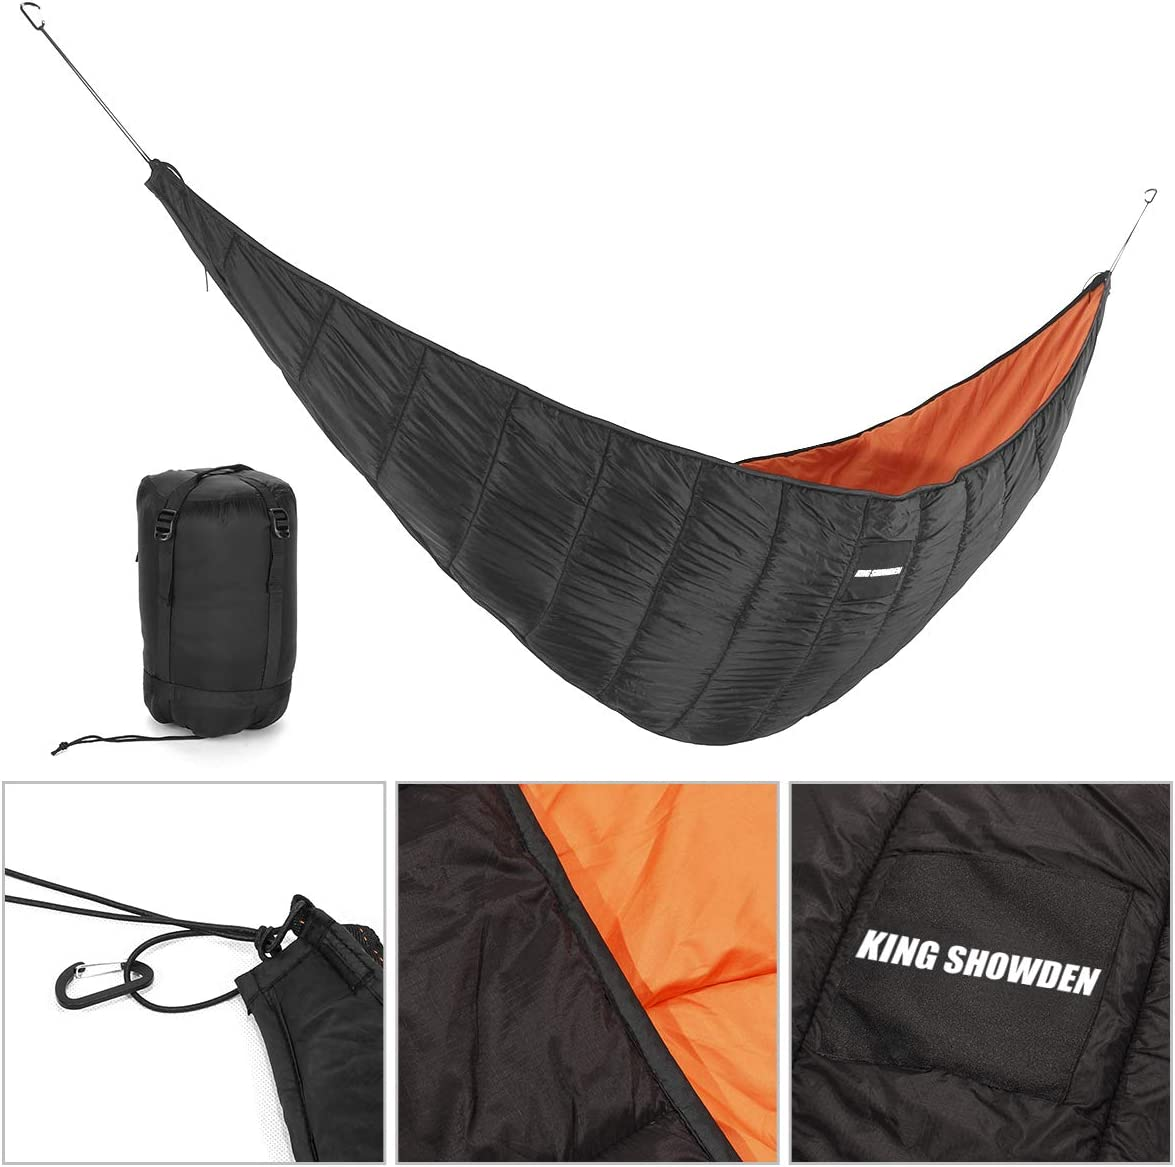 KING SHOWDEN Hammock Underquilt Lightweight Camping Winter Sleeping Bag Under Quilt Blanket Ultralight Underquilt Keep Your Warmer Saves Space Portable